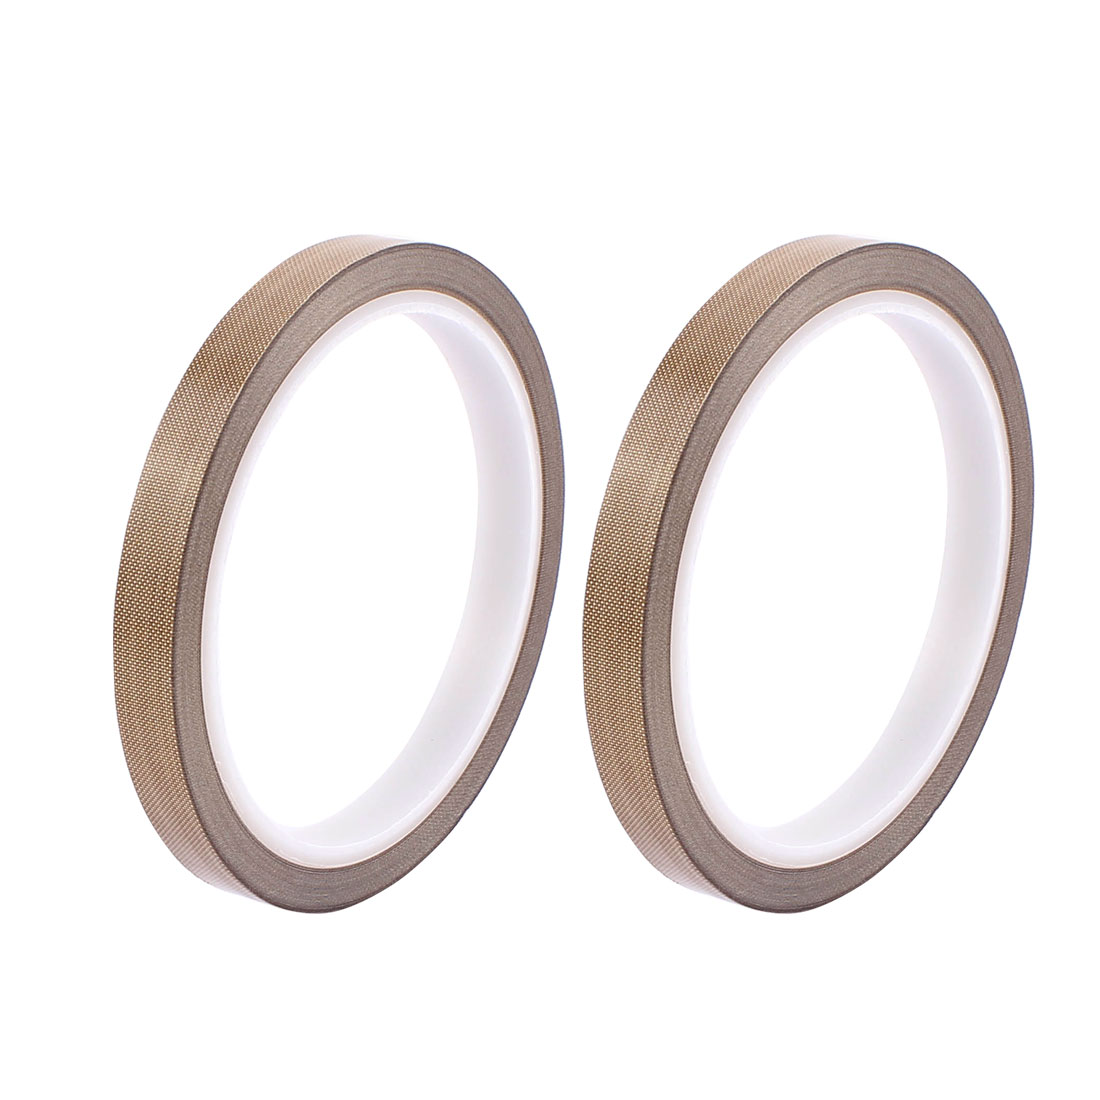 2pcs 0.18mm x 10mm Nonstick High Temperature PTFE Adhesive Tape 10M Long